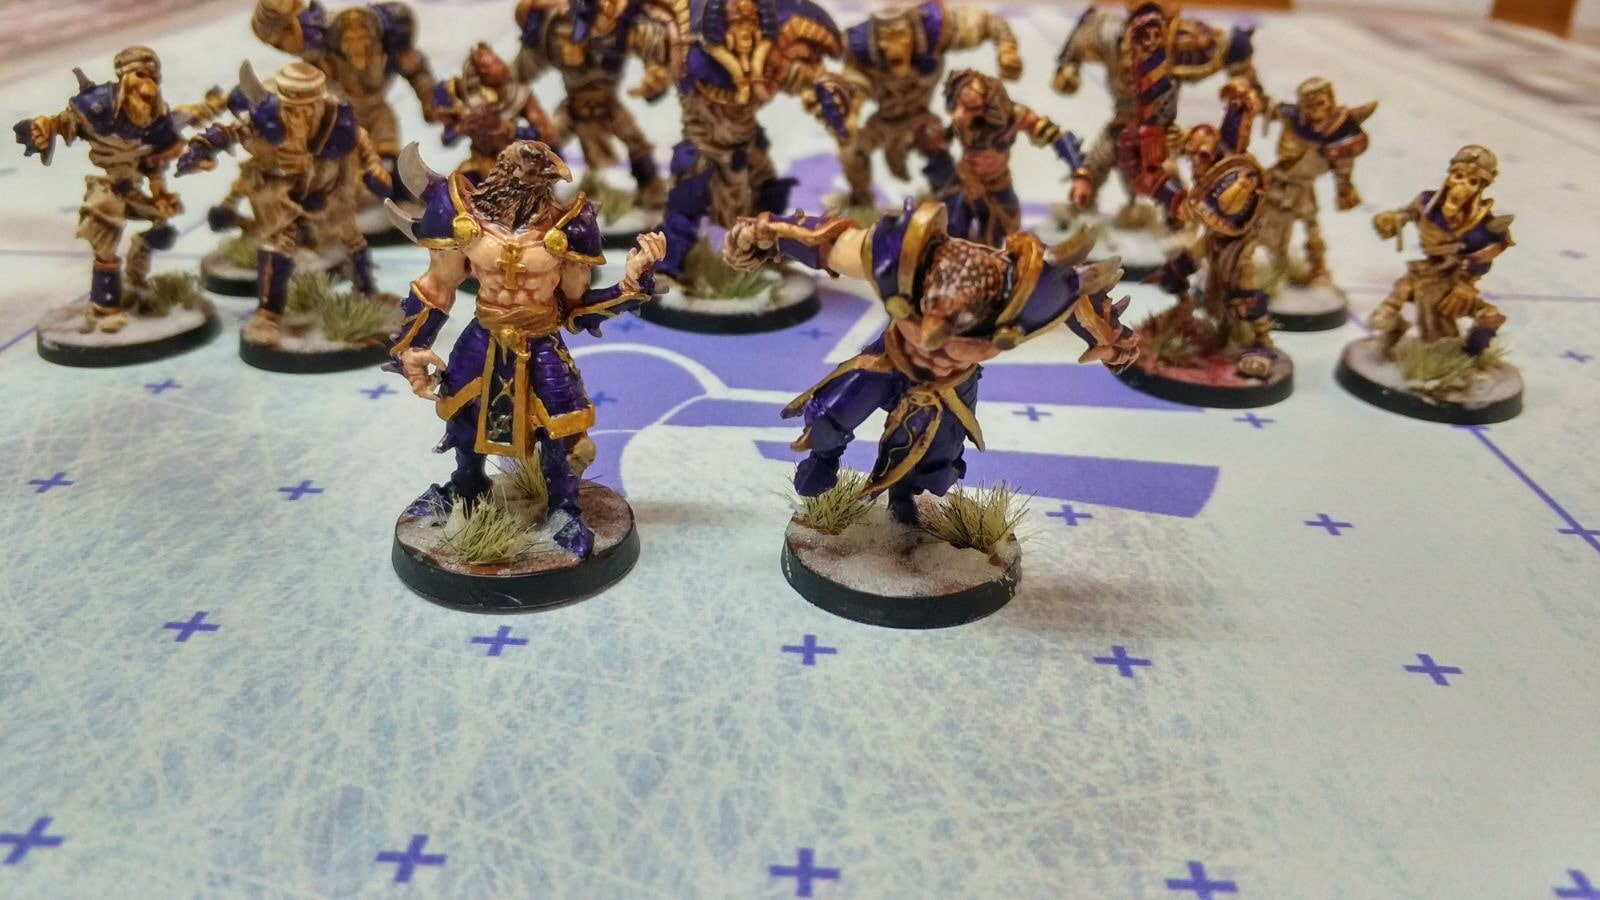 Equipo de Khemry de Willy miniatures (3)